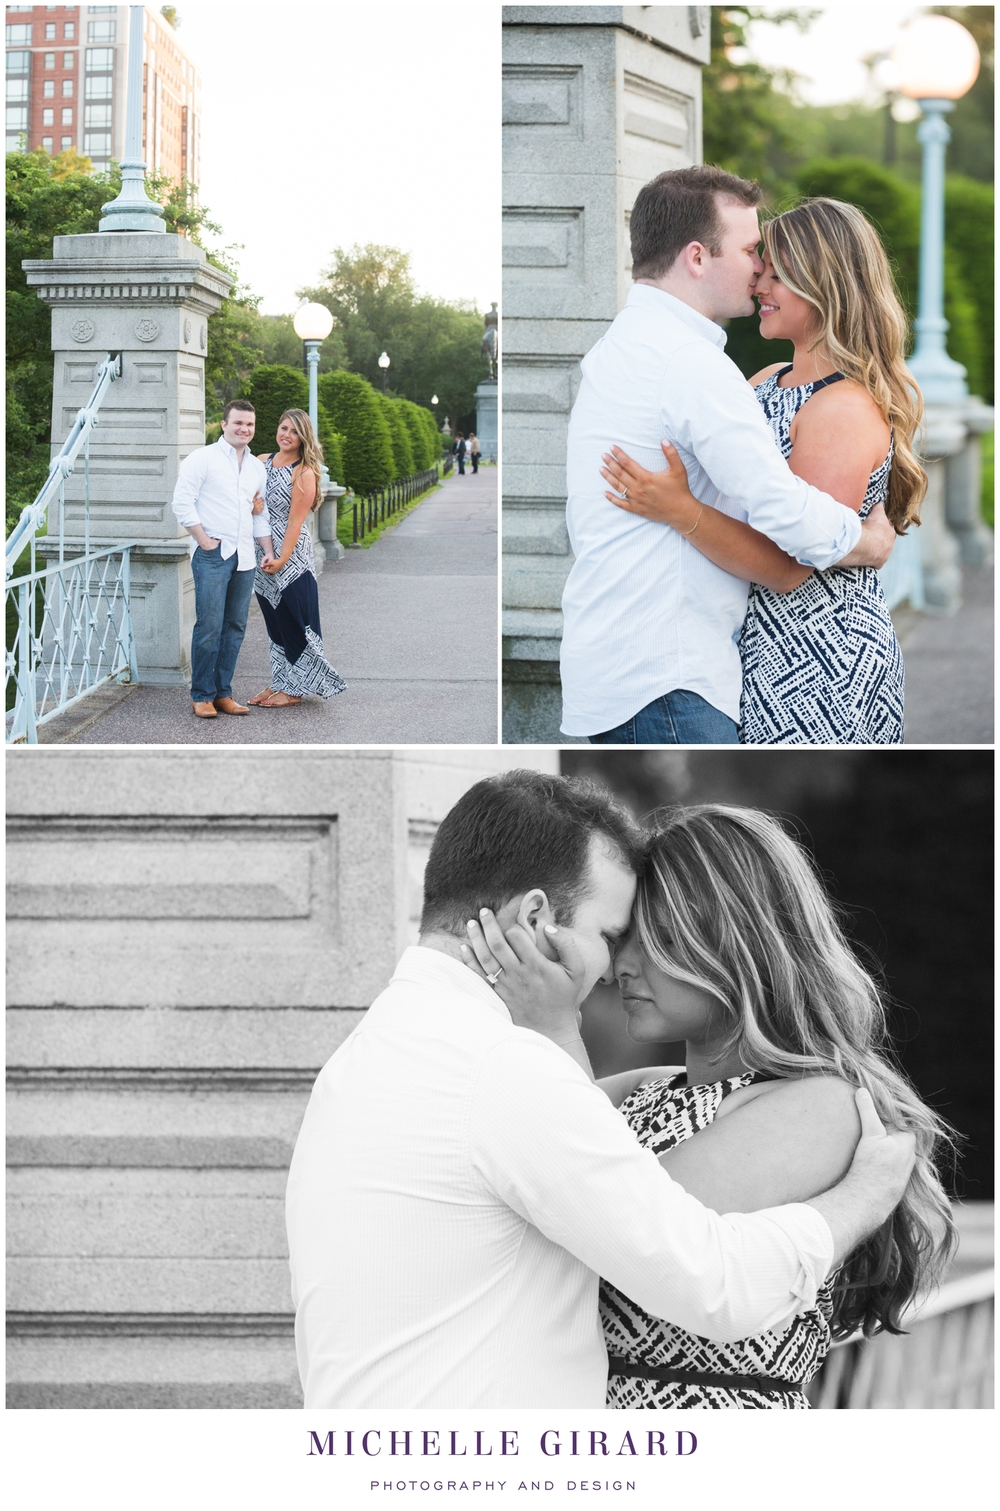 BostonCommonsGardens_BostonEngagementSession_MichelleGirardPhotography02.jpg